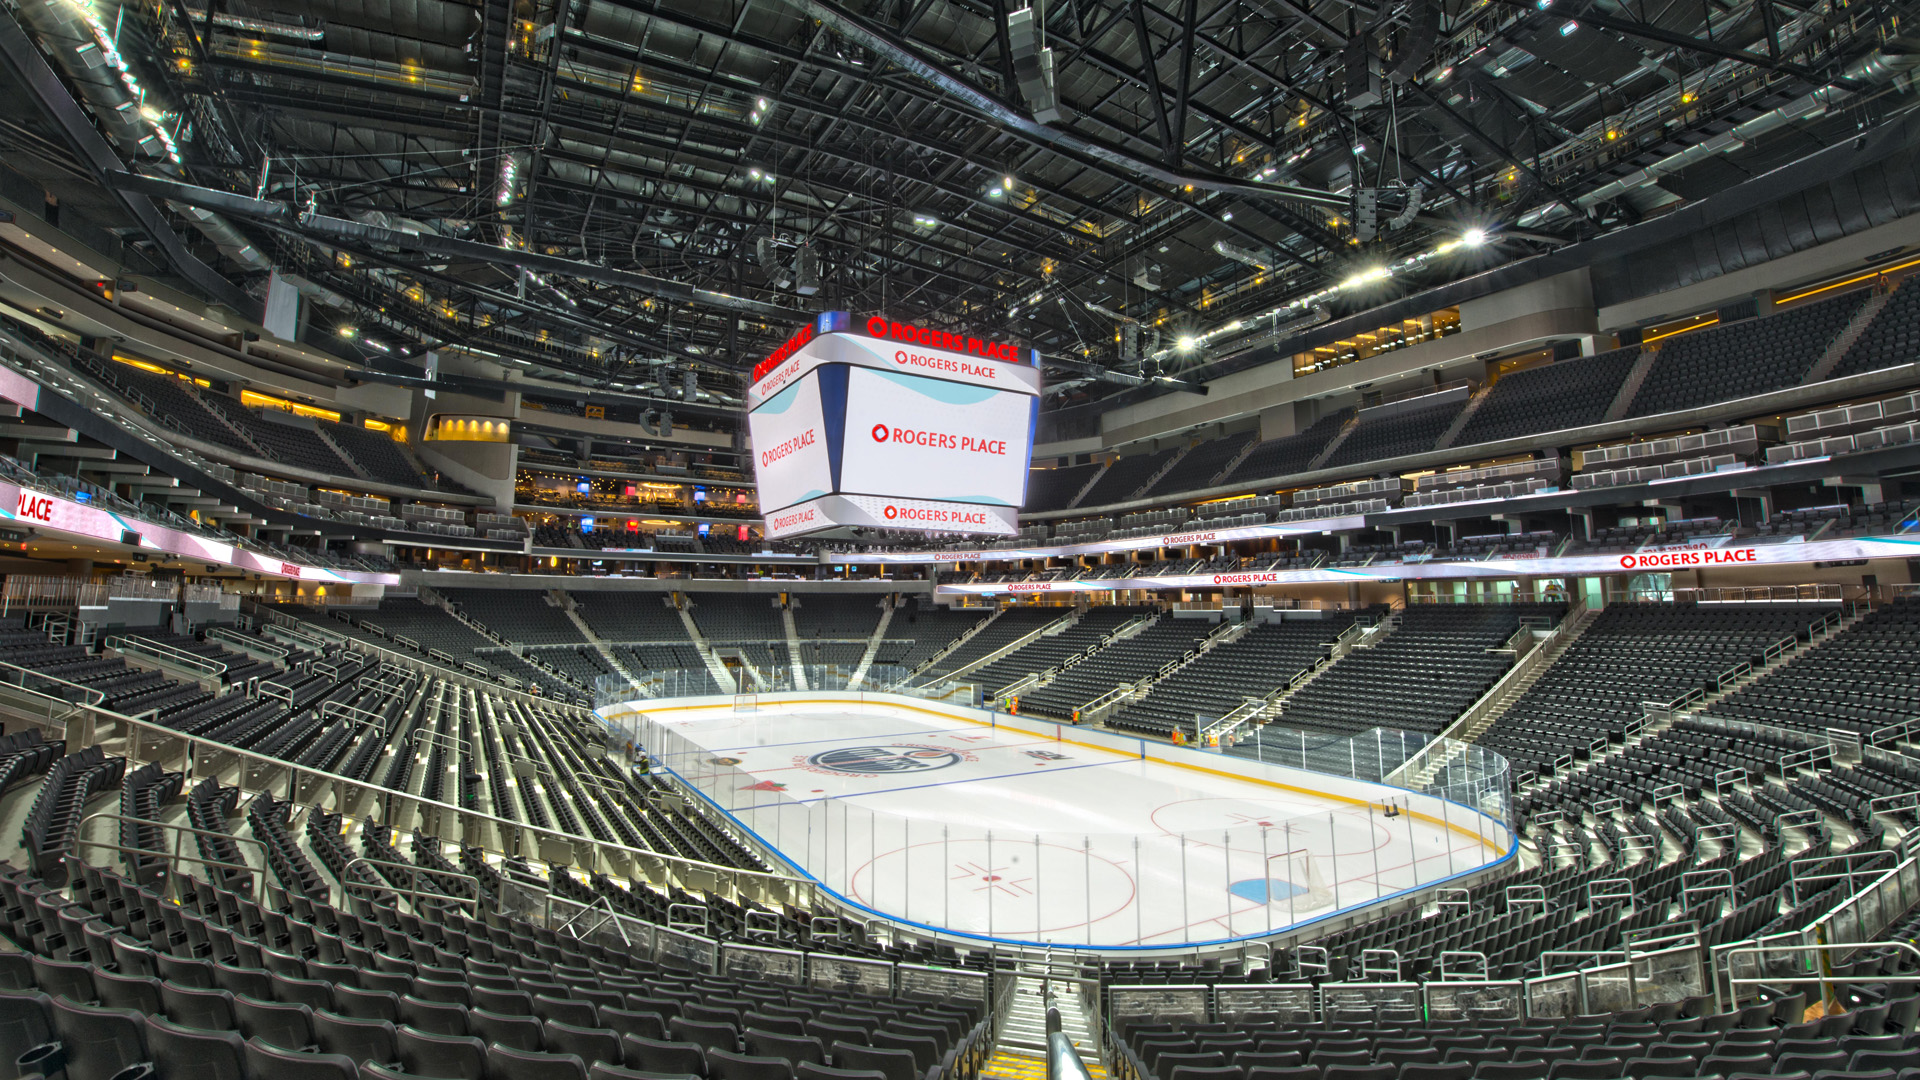 Image sourced by:  http://oilkings.ca/rogersplace/